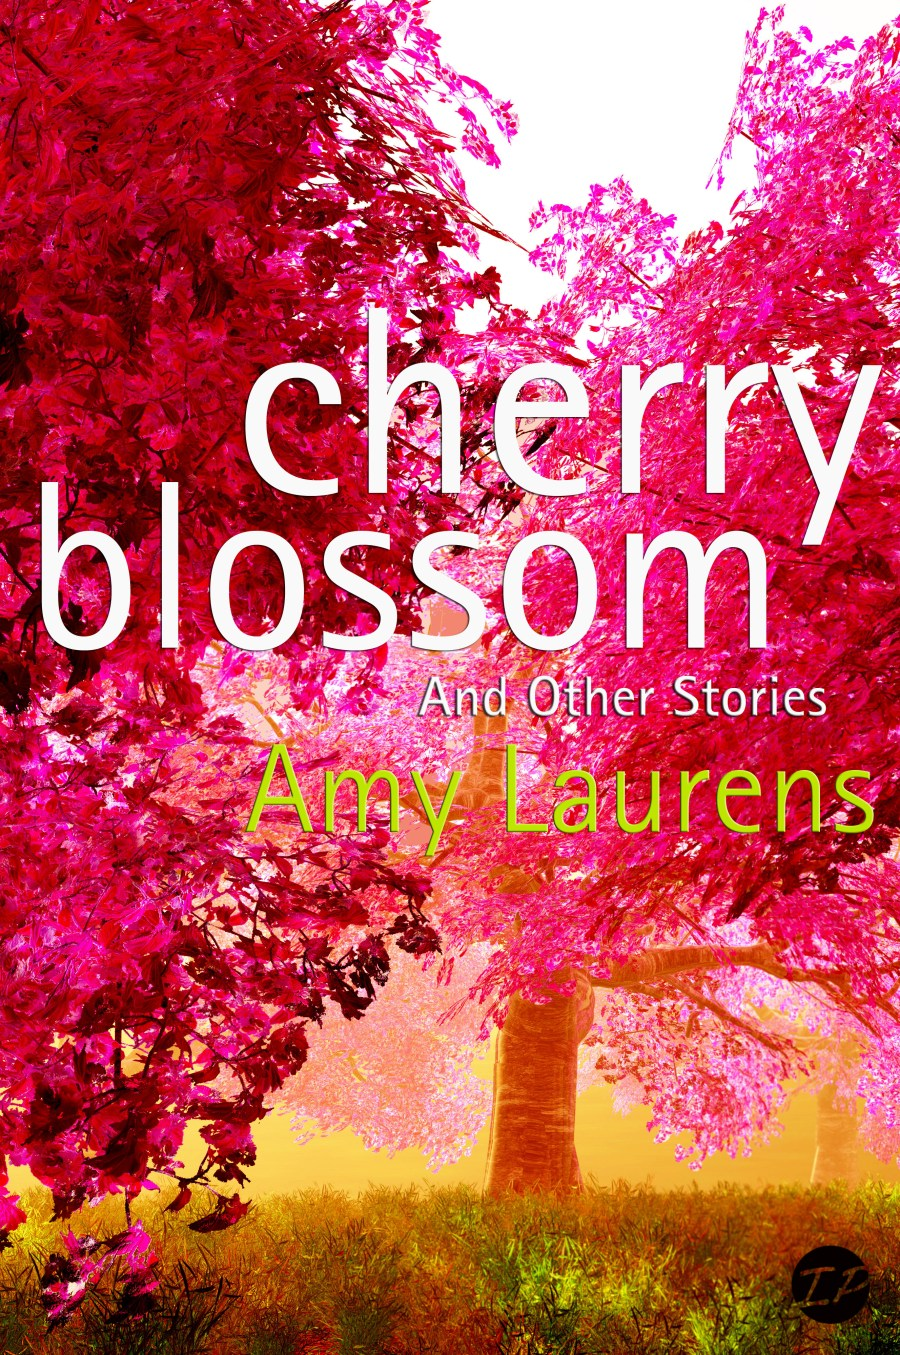 Cherry Blossom (Out of print; limited copies remaining)